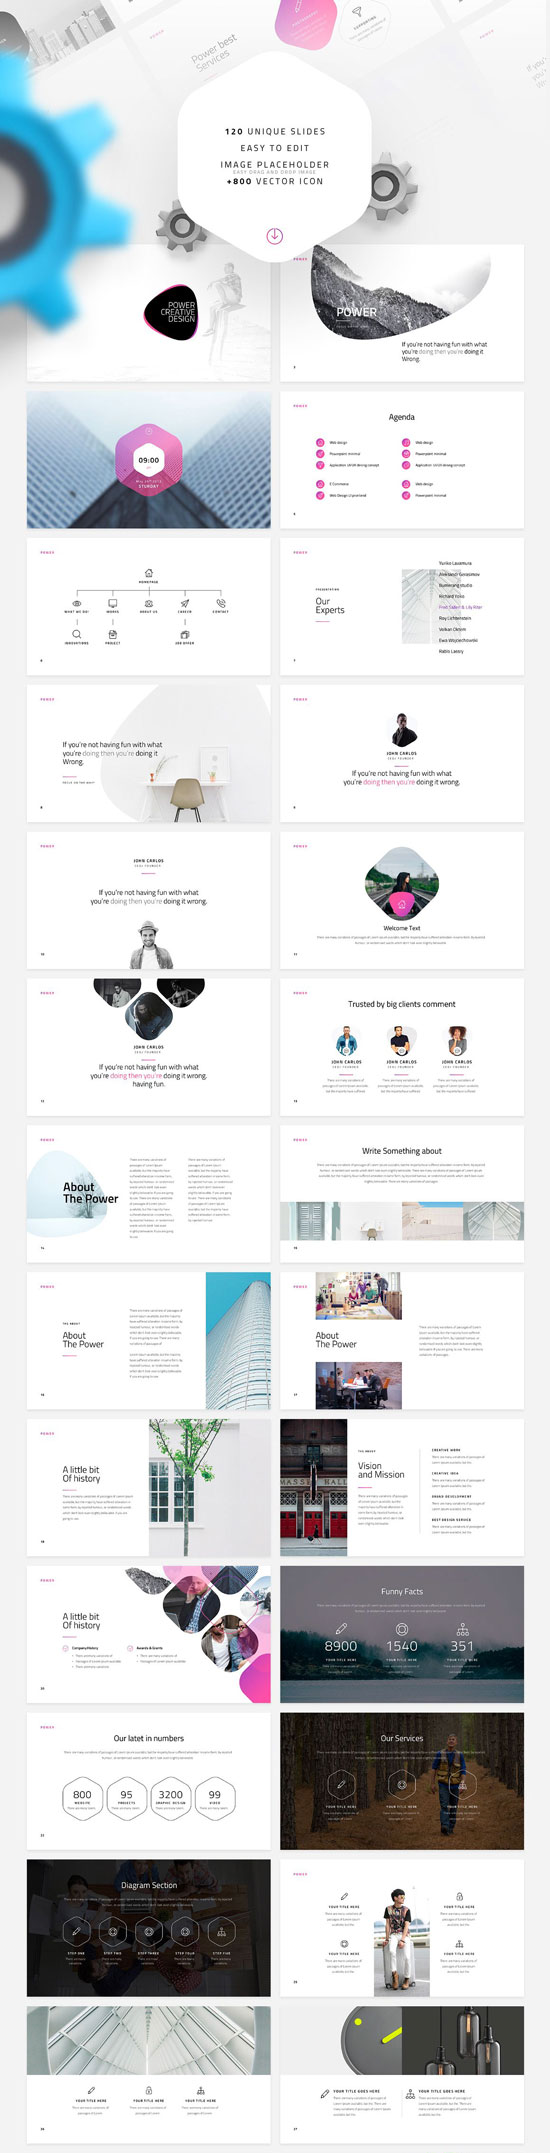 Free PowerPoint templates collection no. 6